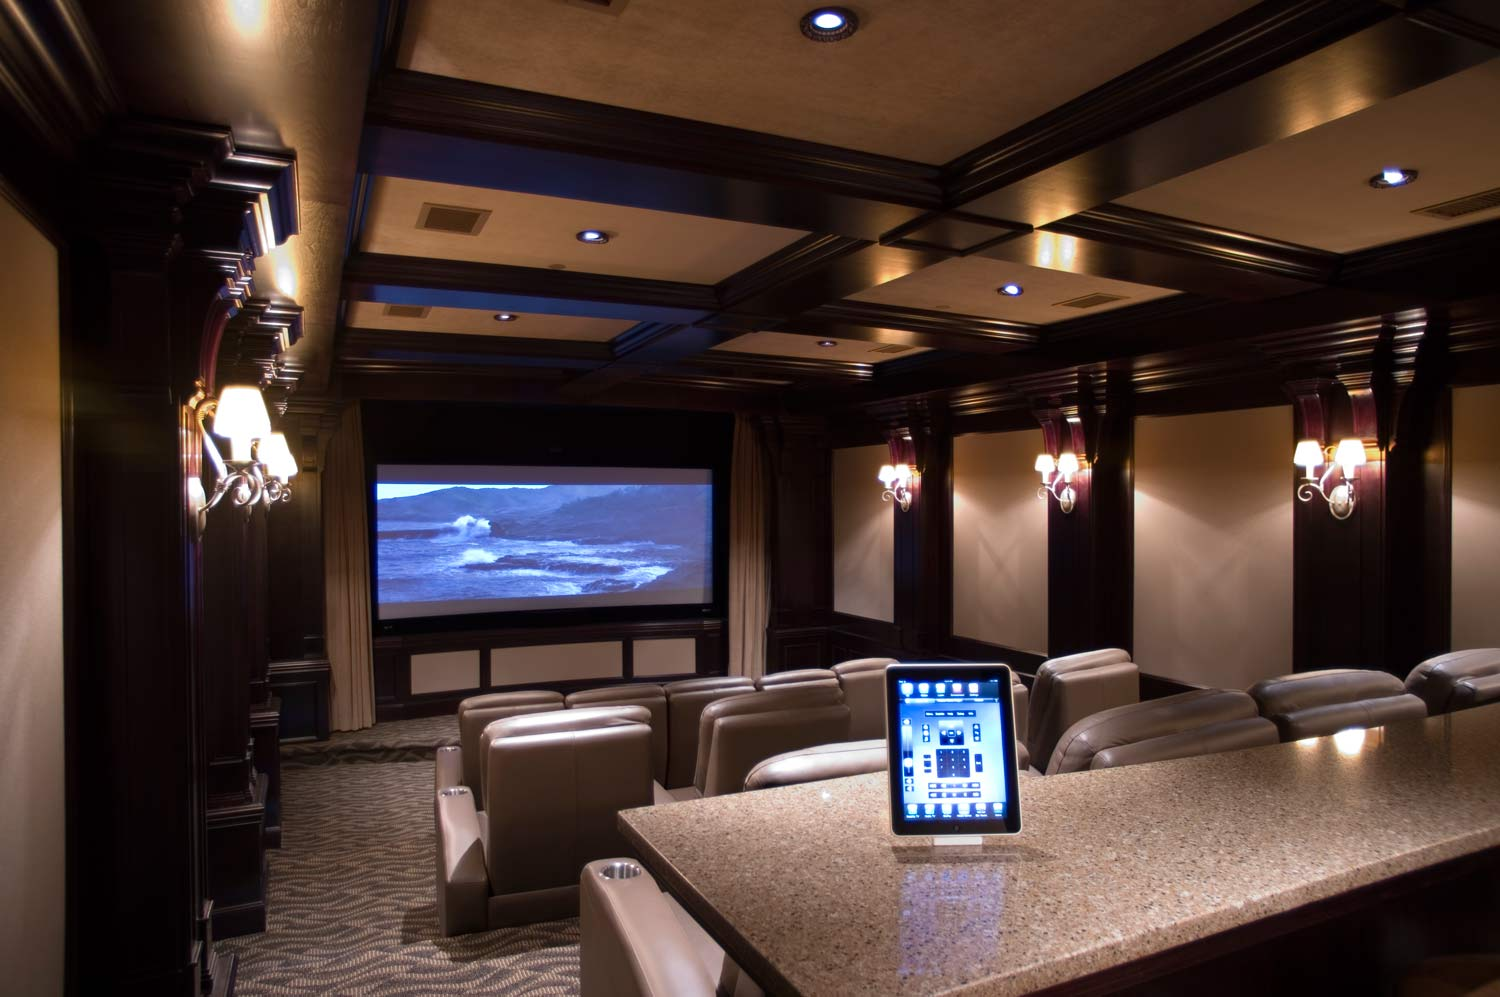 Home Theatre Systems  Home Theater System Delhi NCR   Home Theater Designing   Home  . Designing A Home Theater. Home Design Ideas